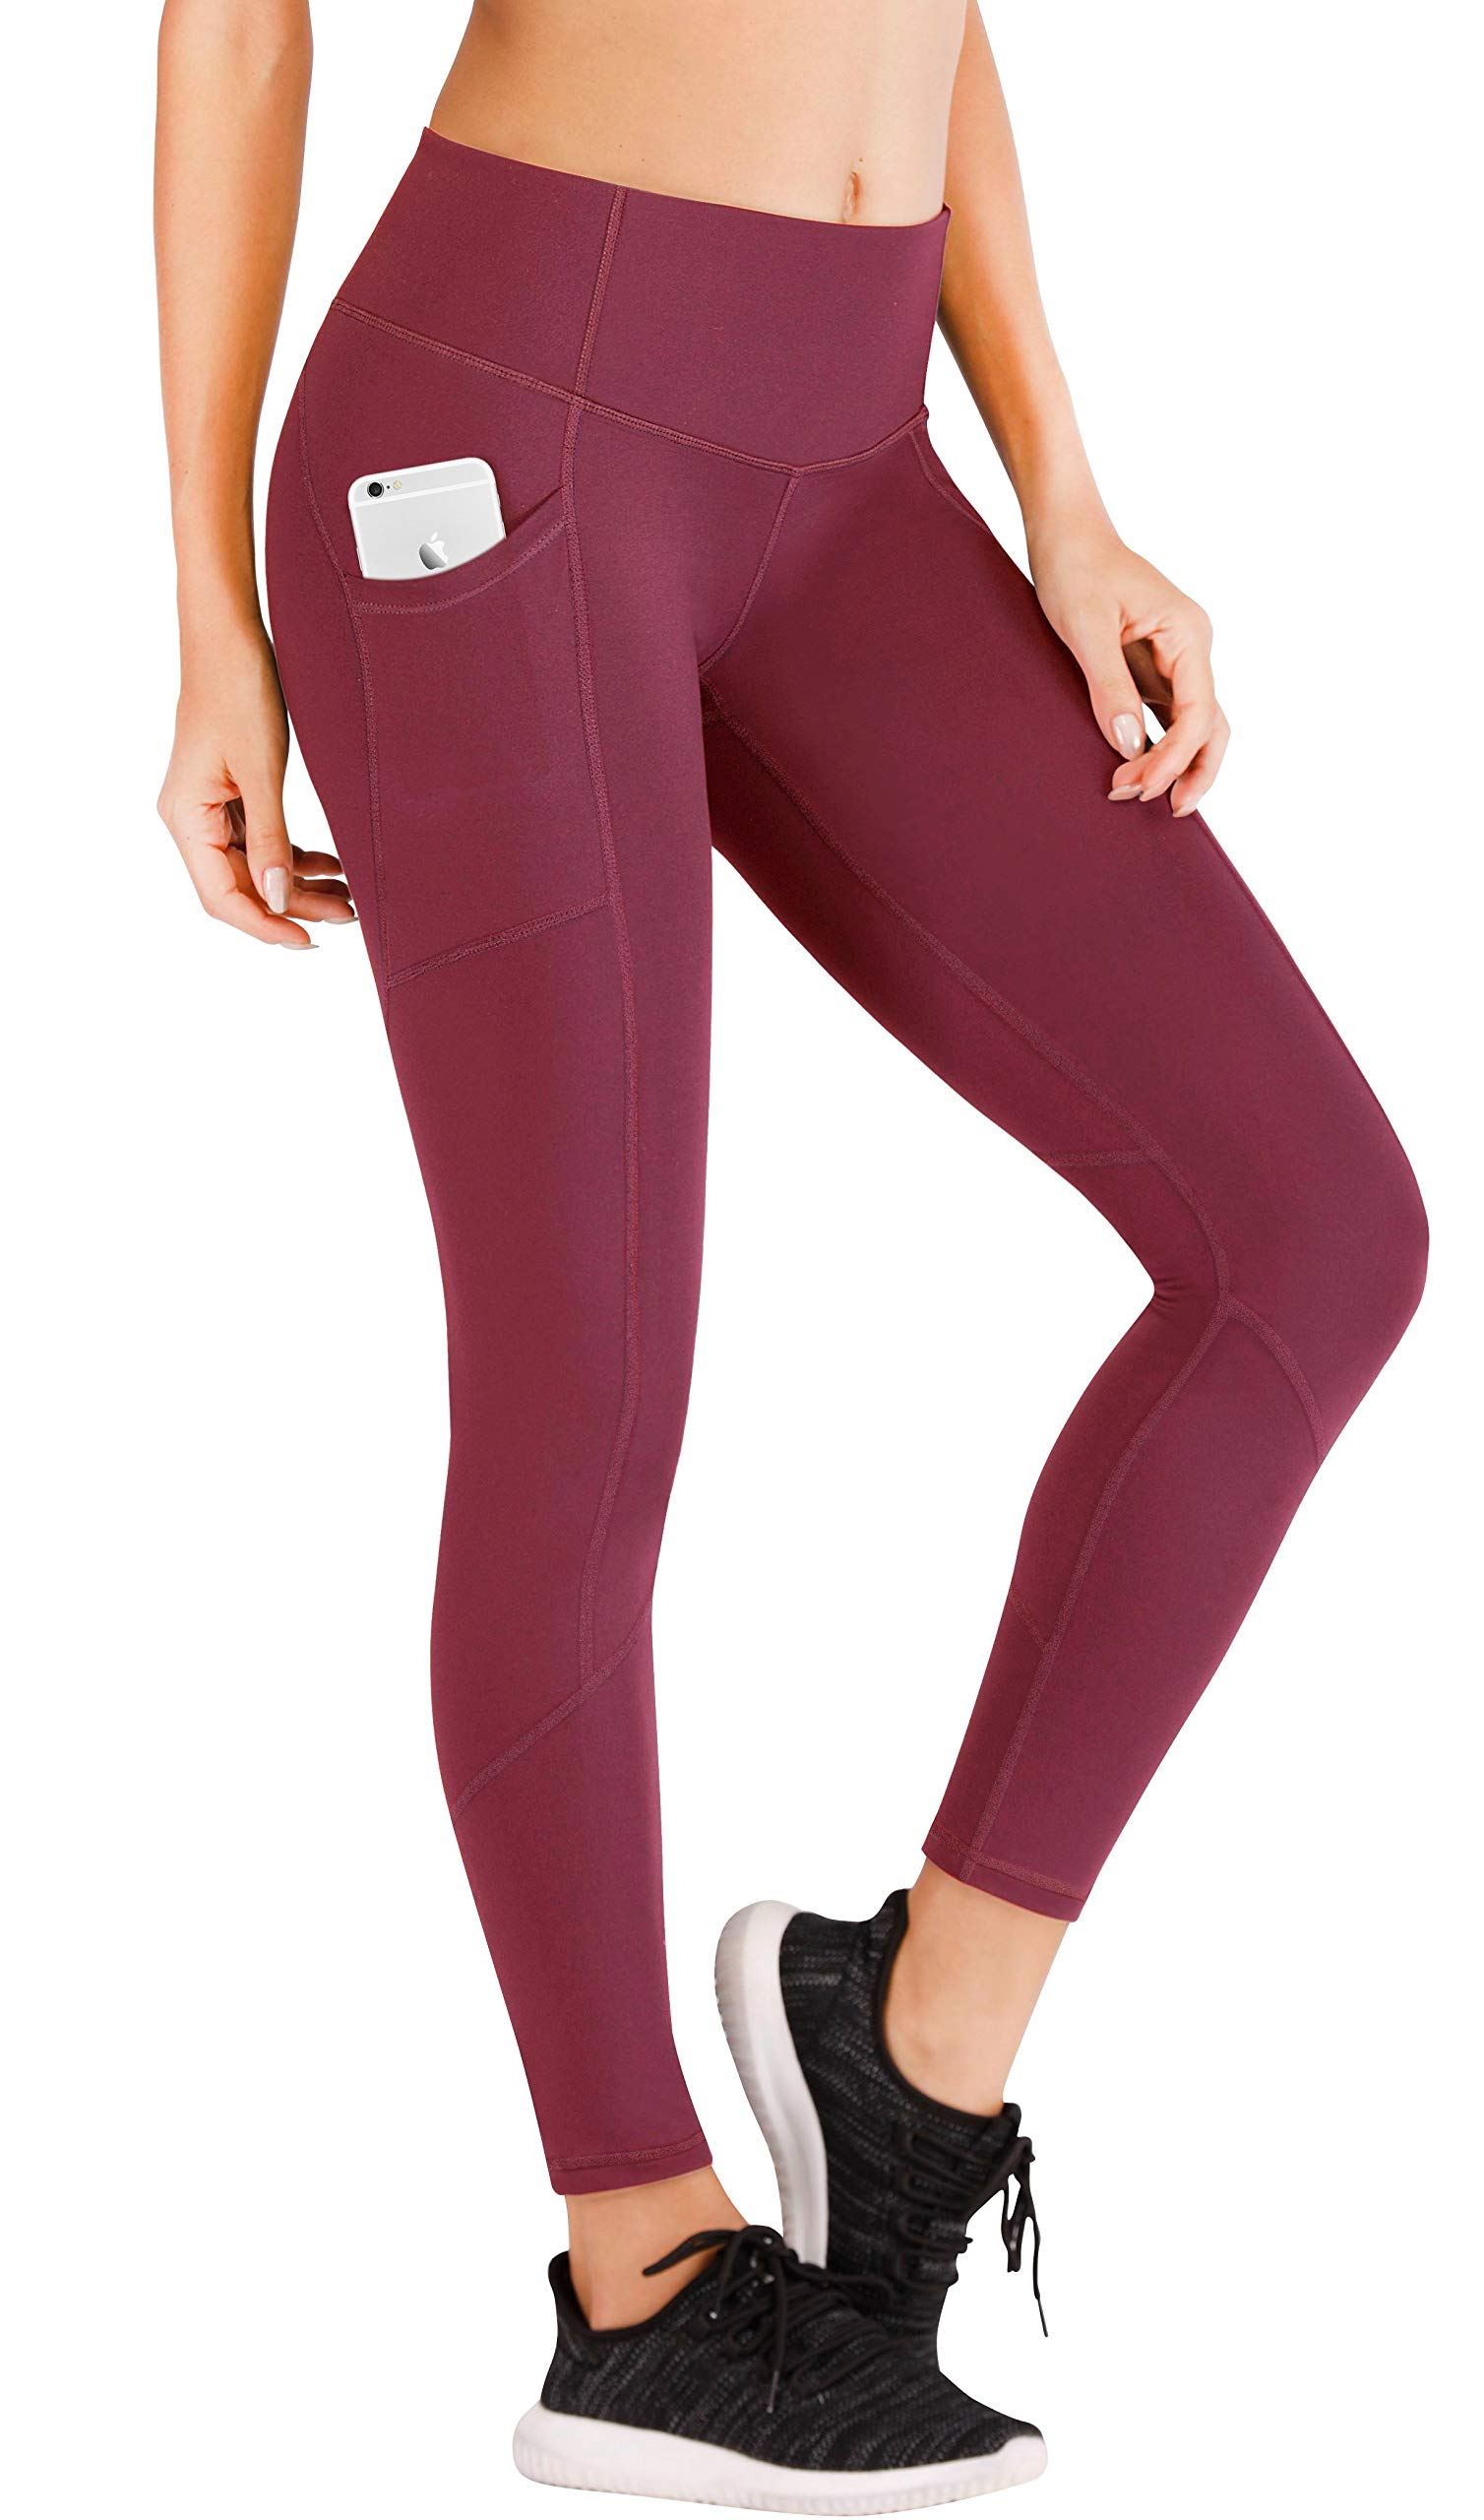 Ewedoos Yoga Pants with Pockets for Women Ultra Soft Leggings with Pockets High Waist Workout Pants (7340 Maroon, X-Large) by Ewedoos